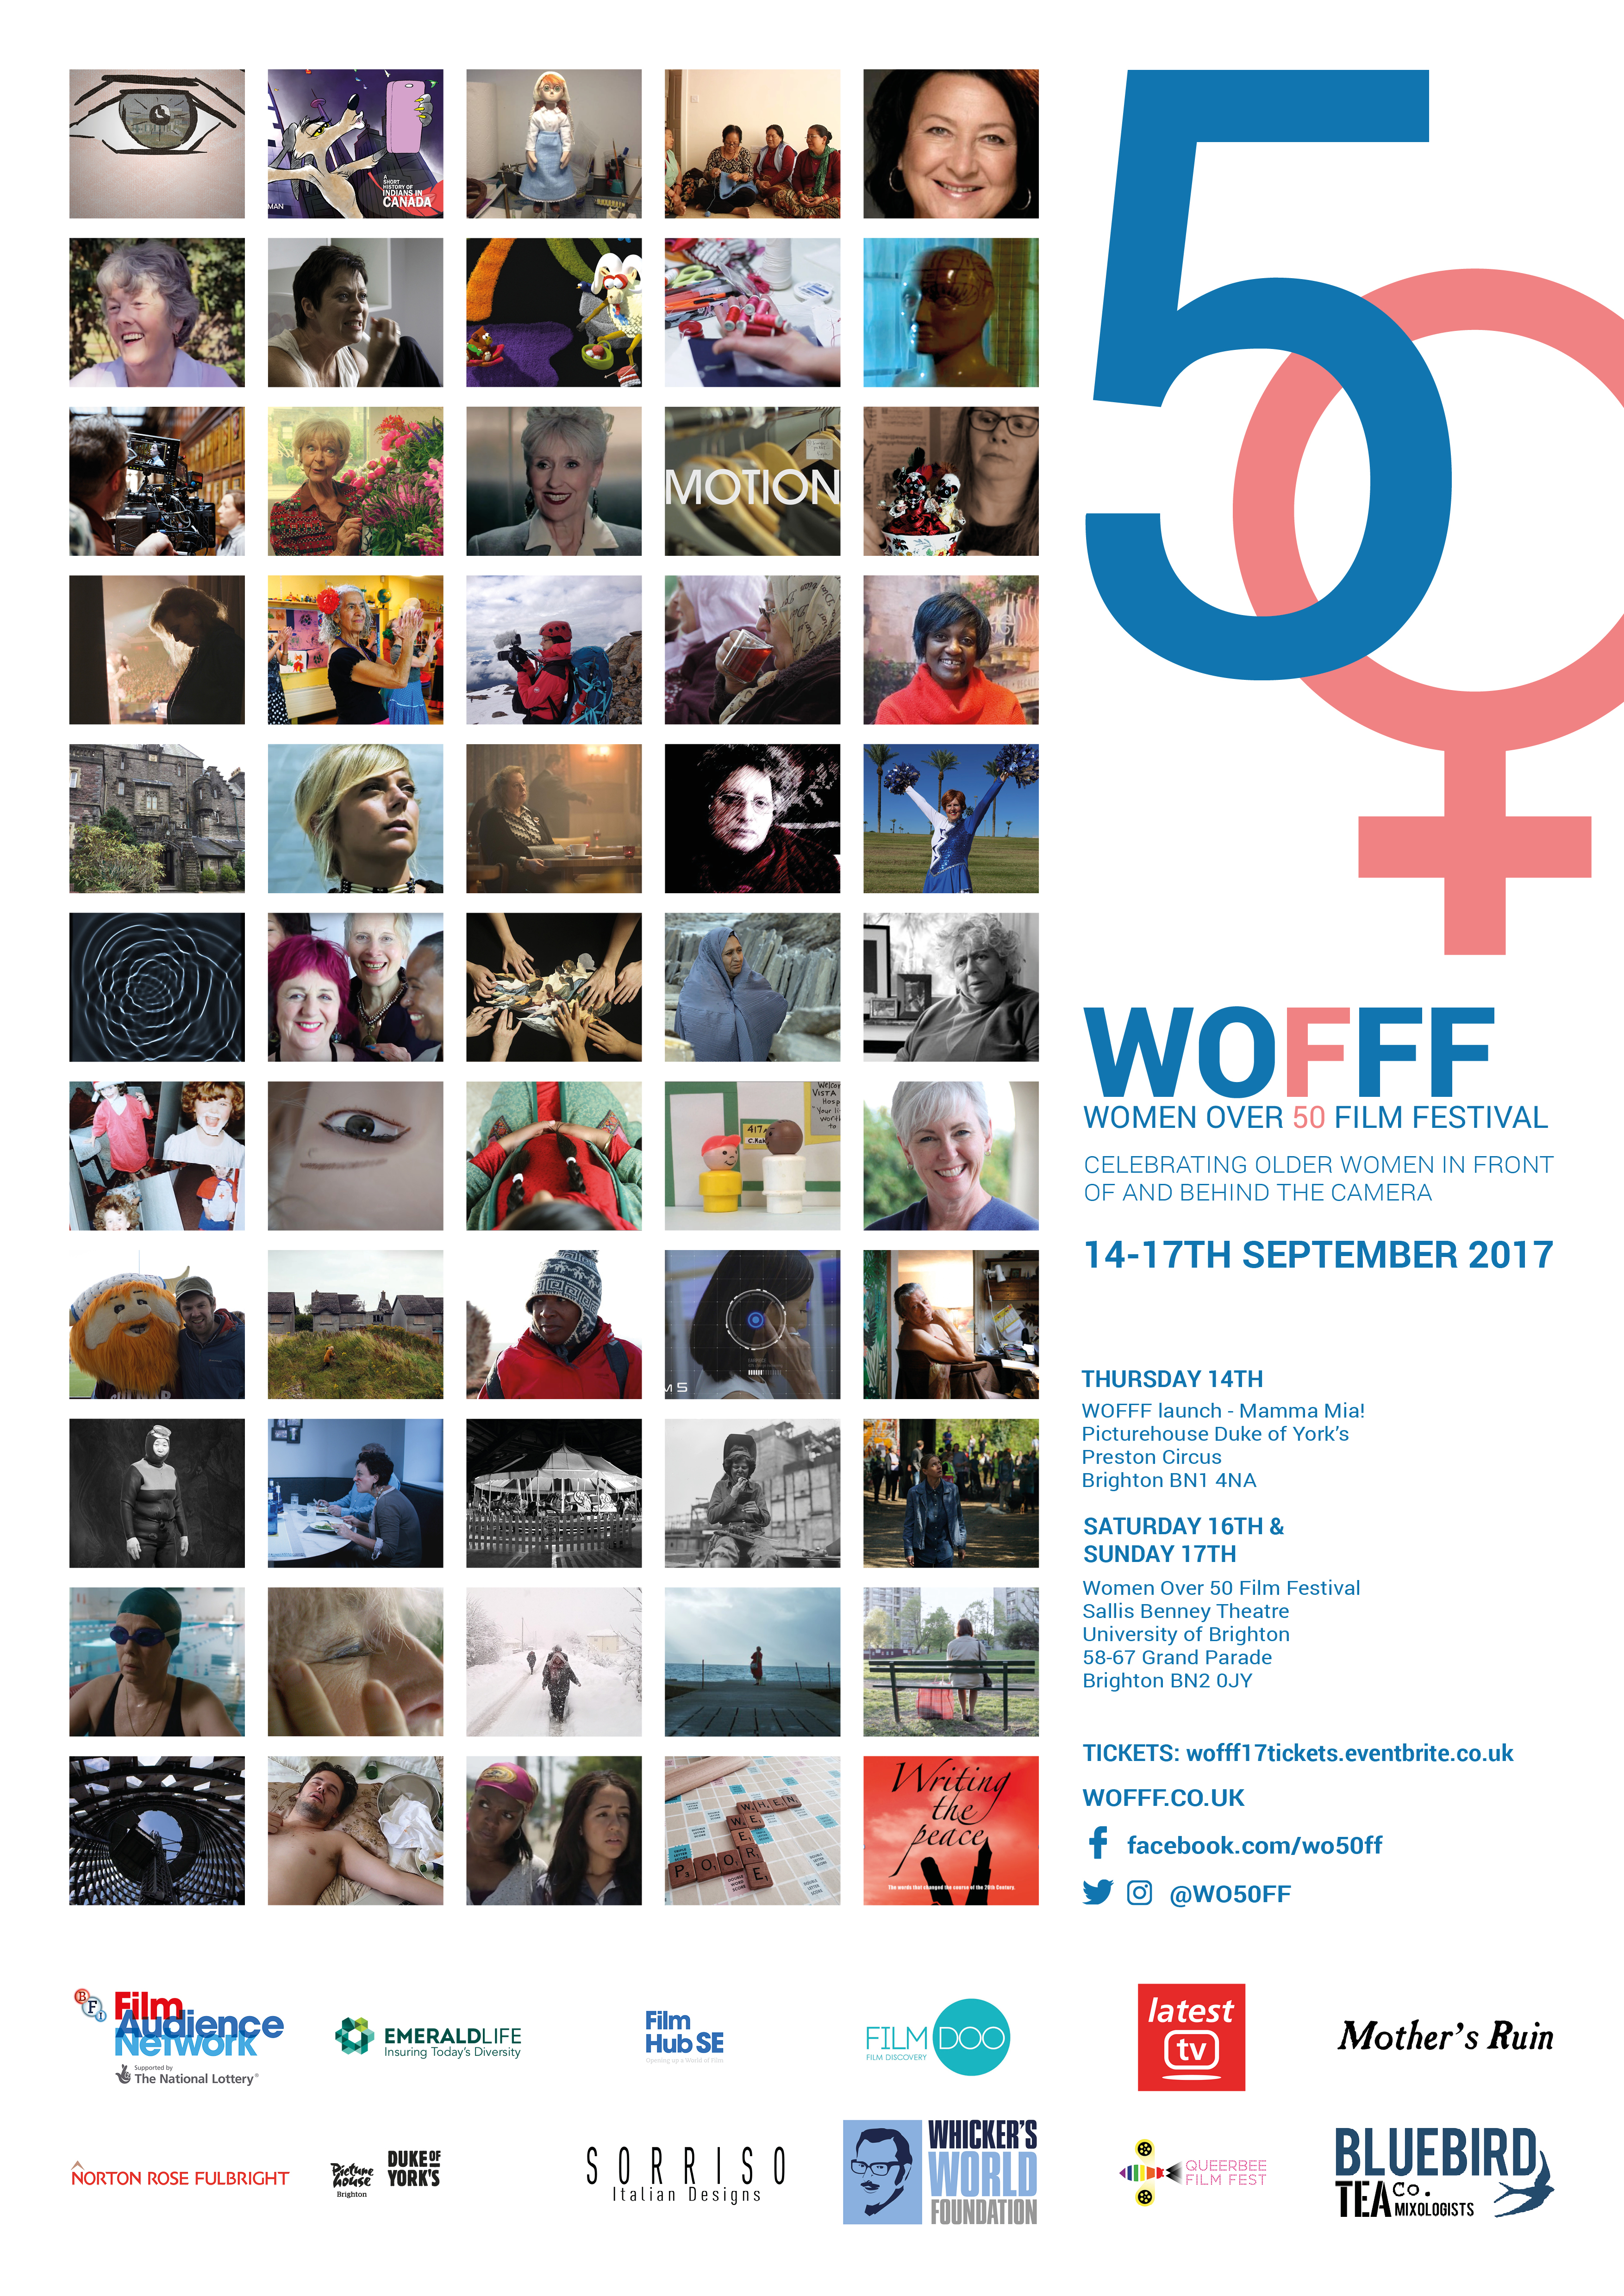 Collage of 55 images of films screening at WOFFF17